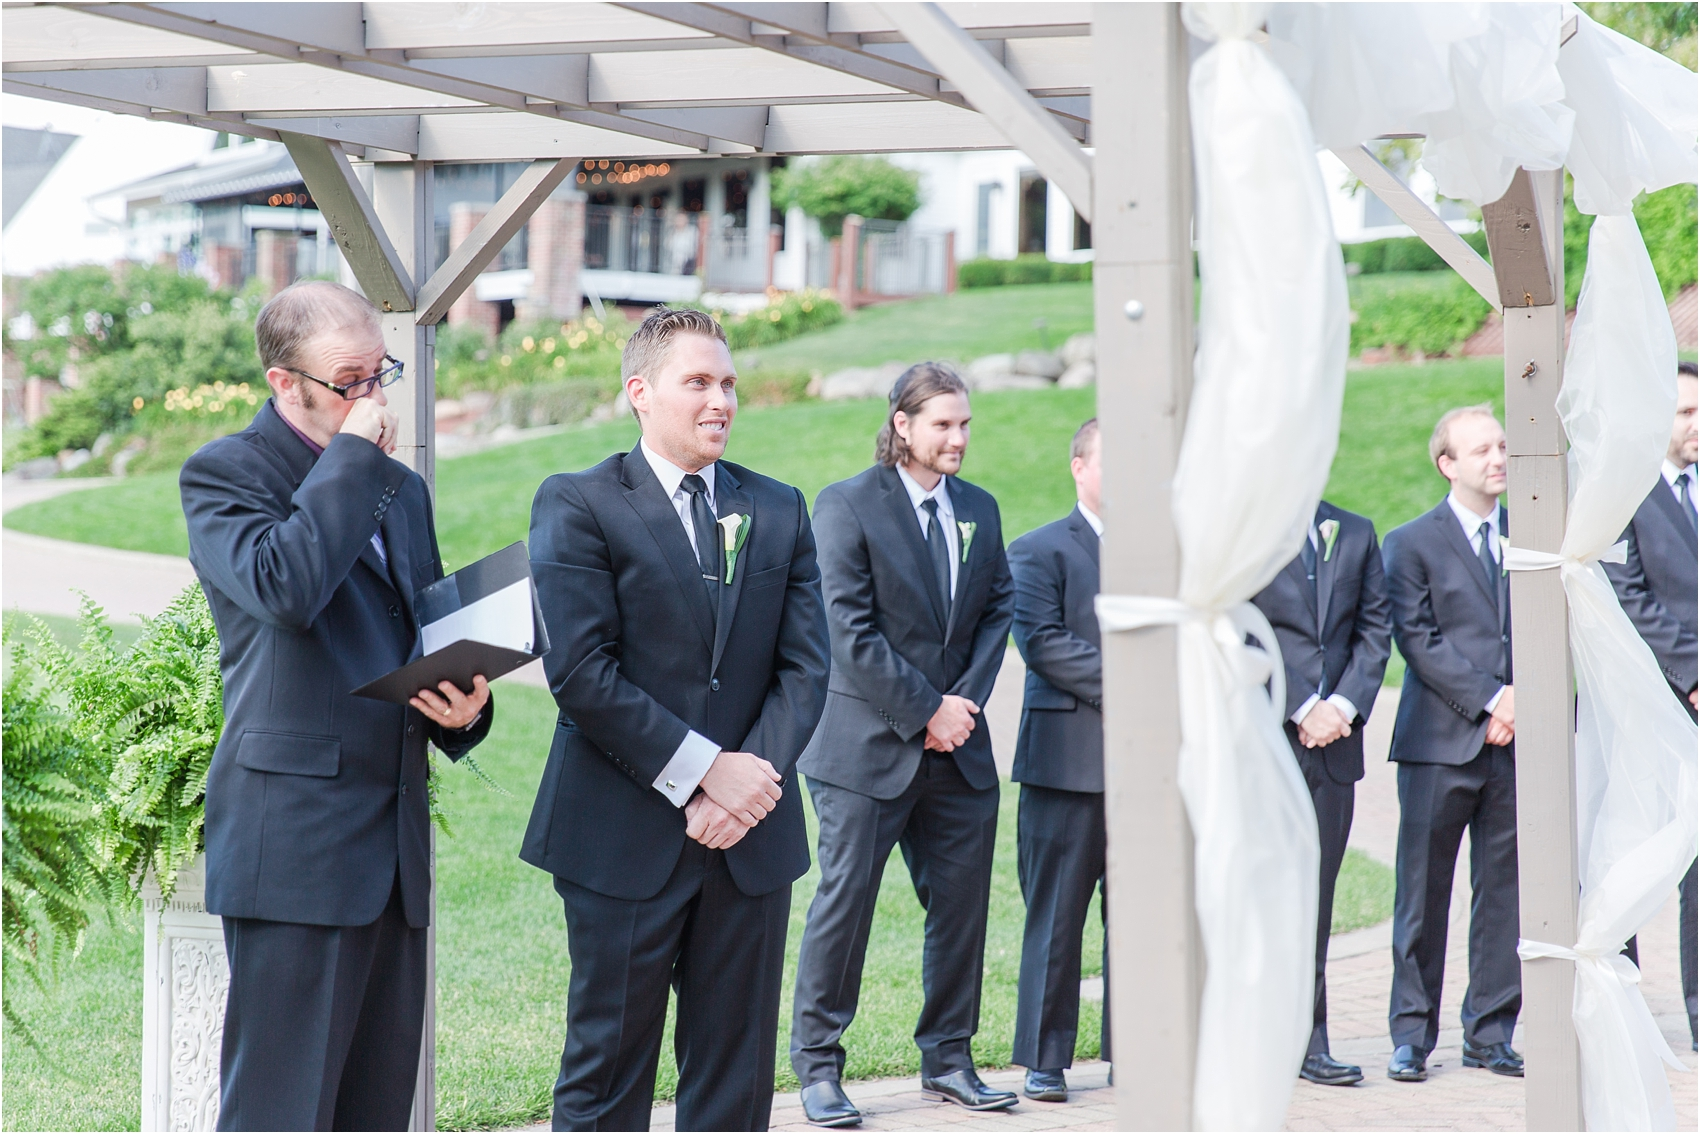 classic-wedding-photos-at-great-oaks-country-club-in-rochester-hills-mi-by-courtney-carolyn-photography_0067.jpg